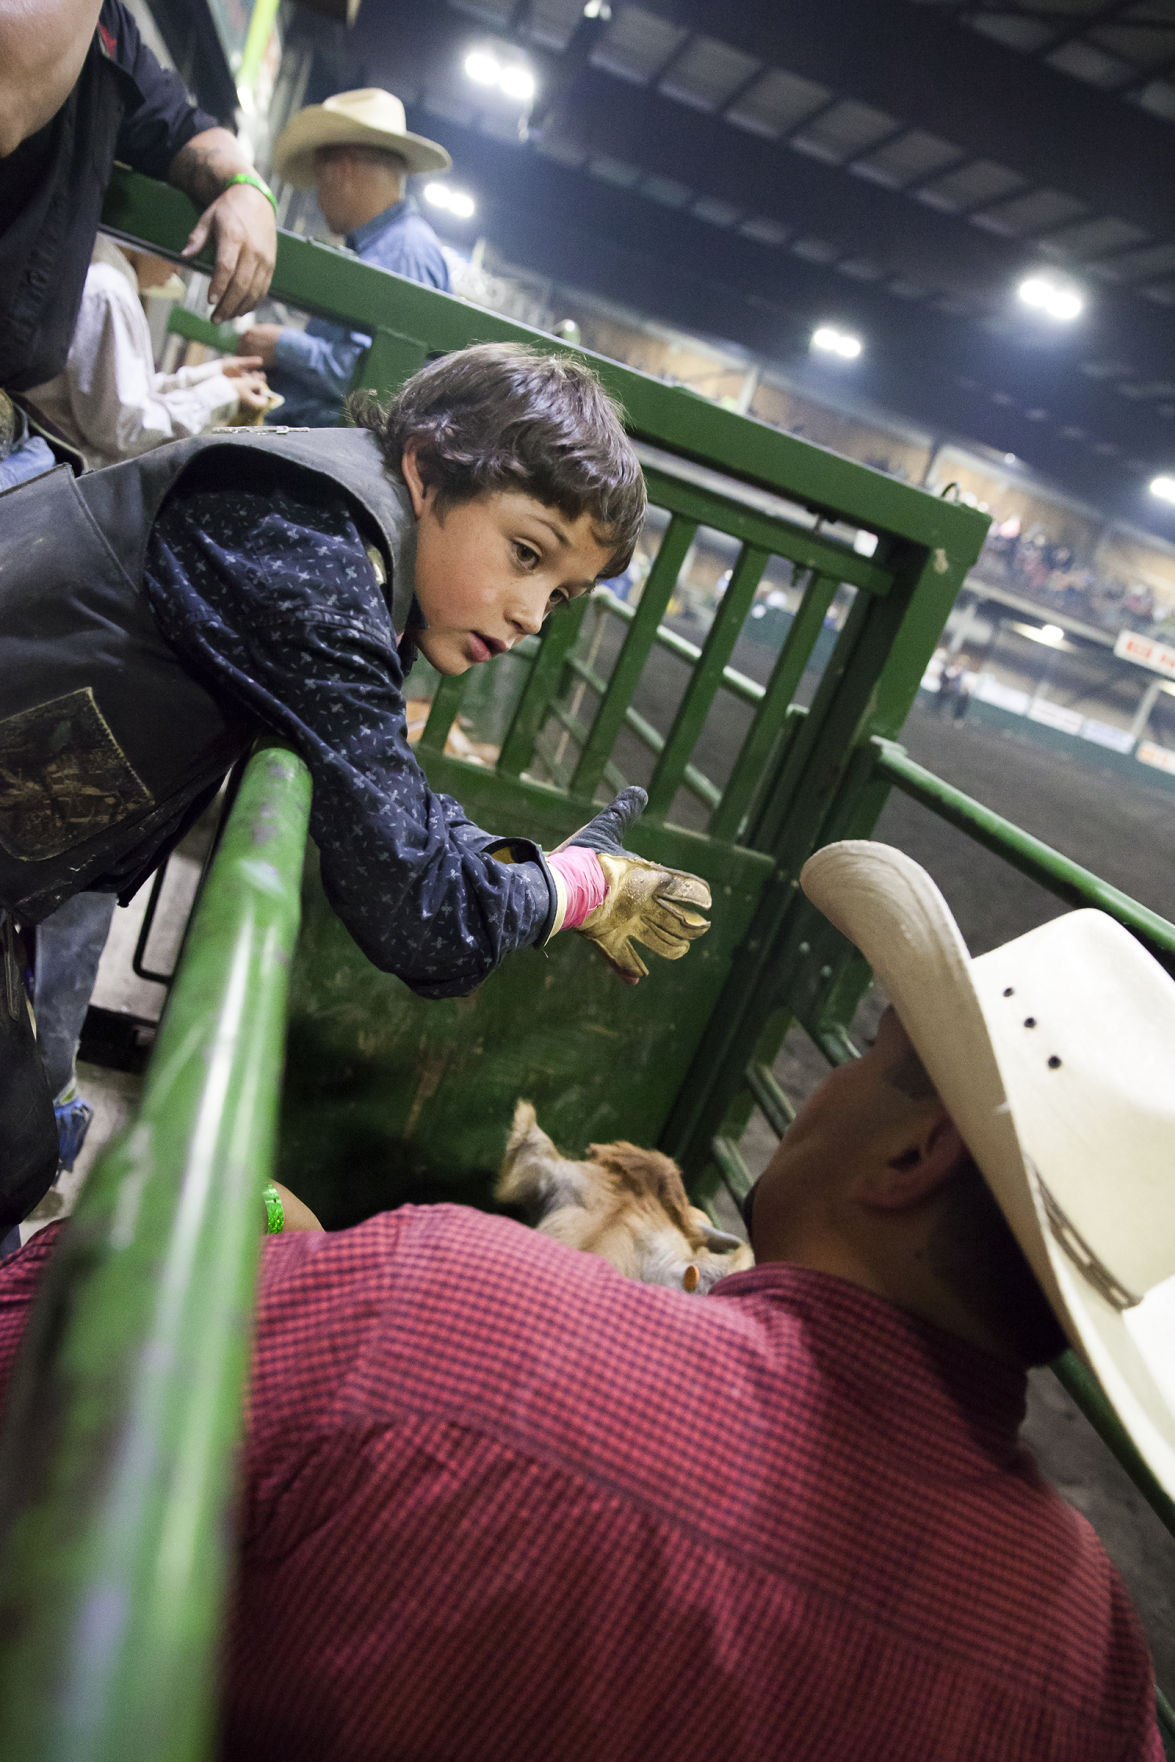 Klamath Falls Enjoys Its 23rd Year Of Professional Rodeo